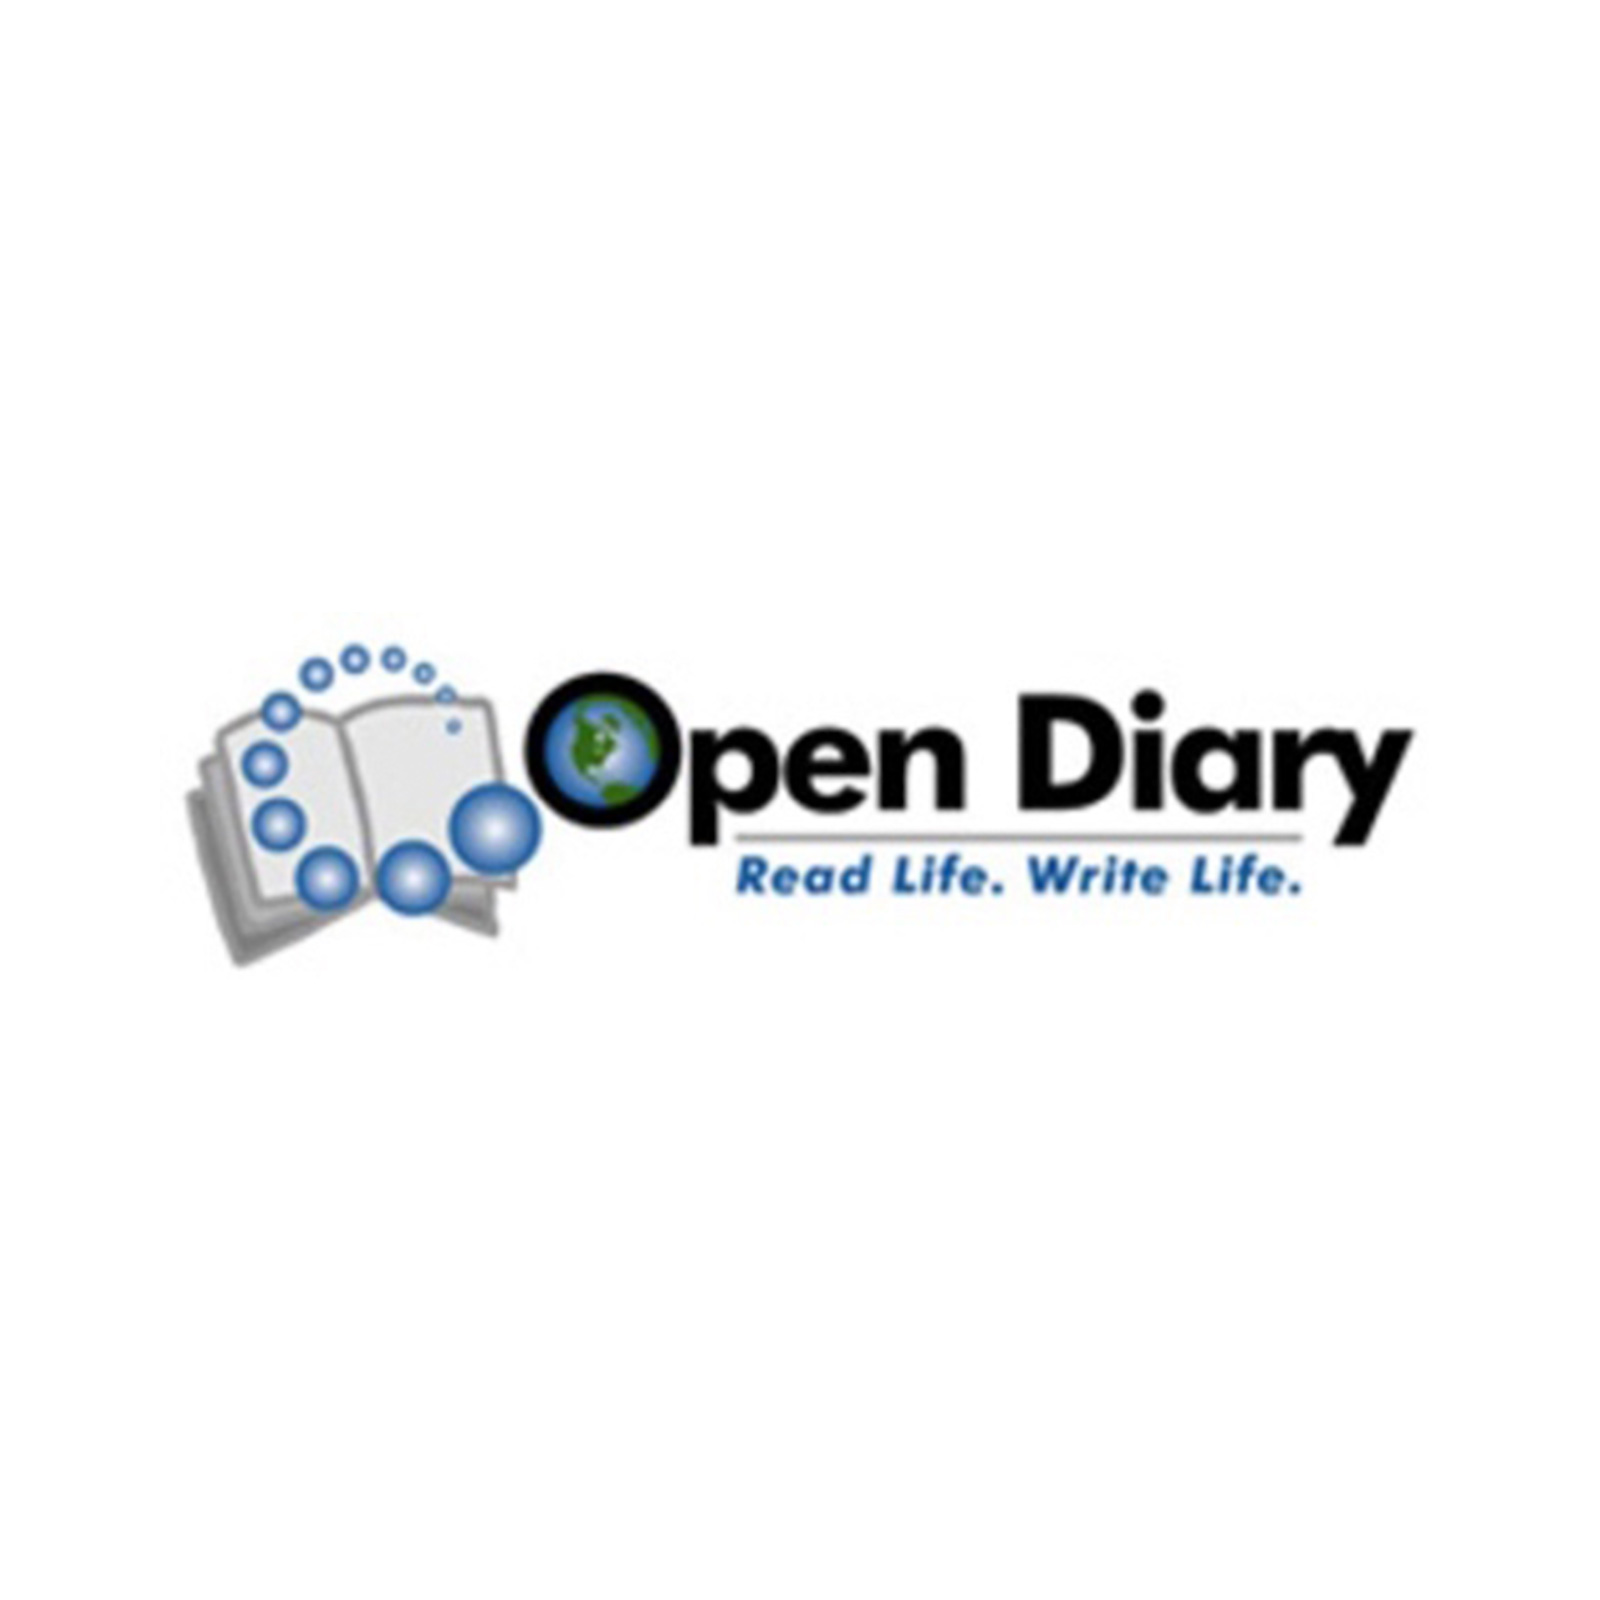 Open Diary is an online diary community, an early example of social networking software.